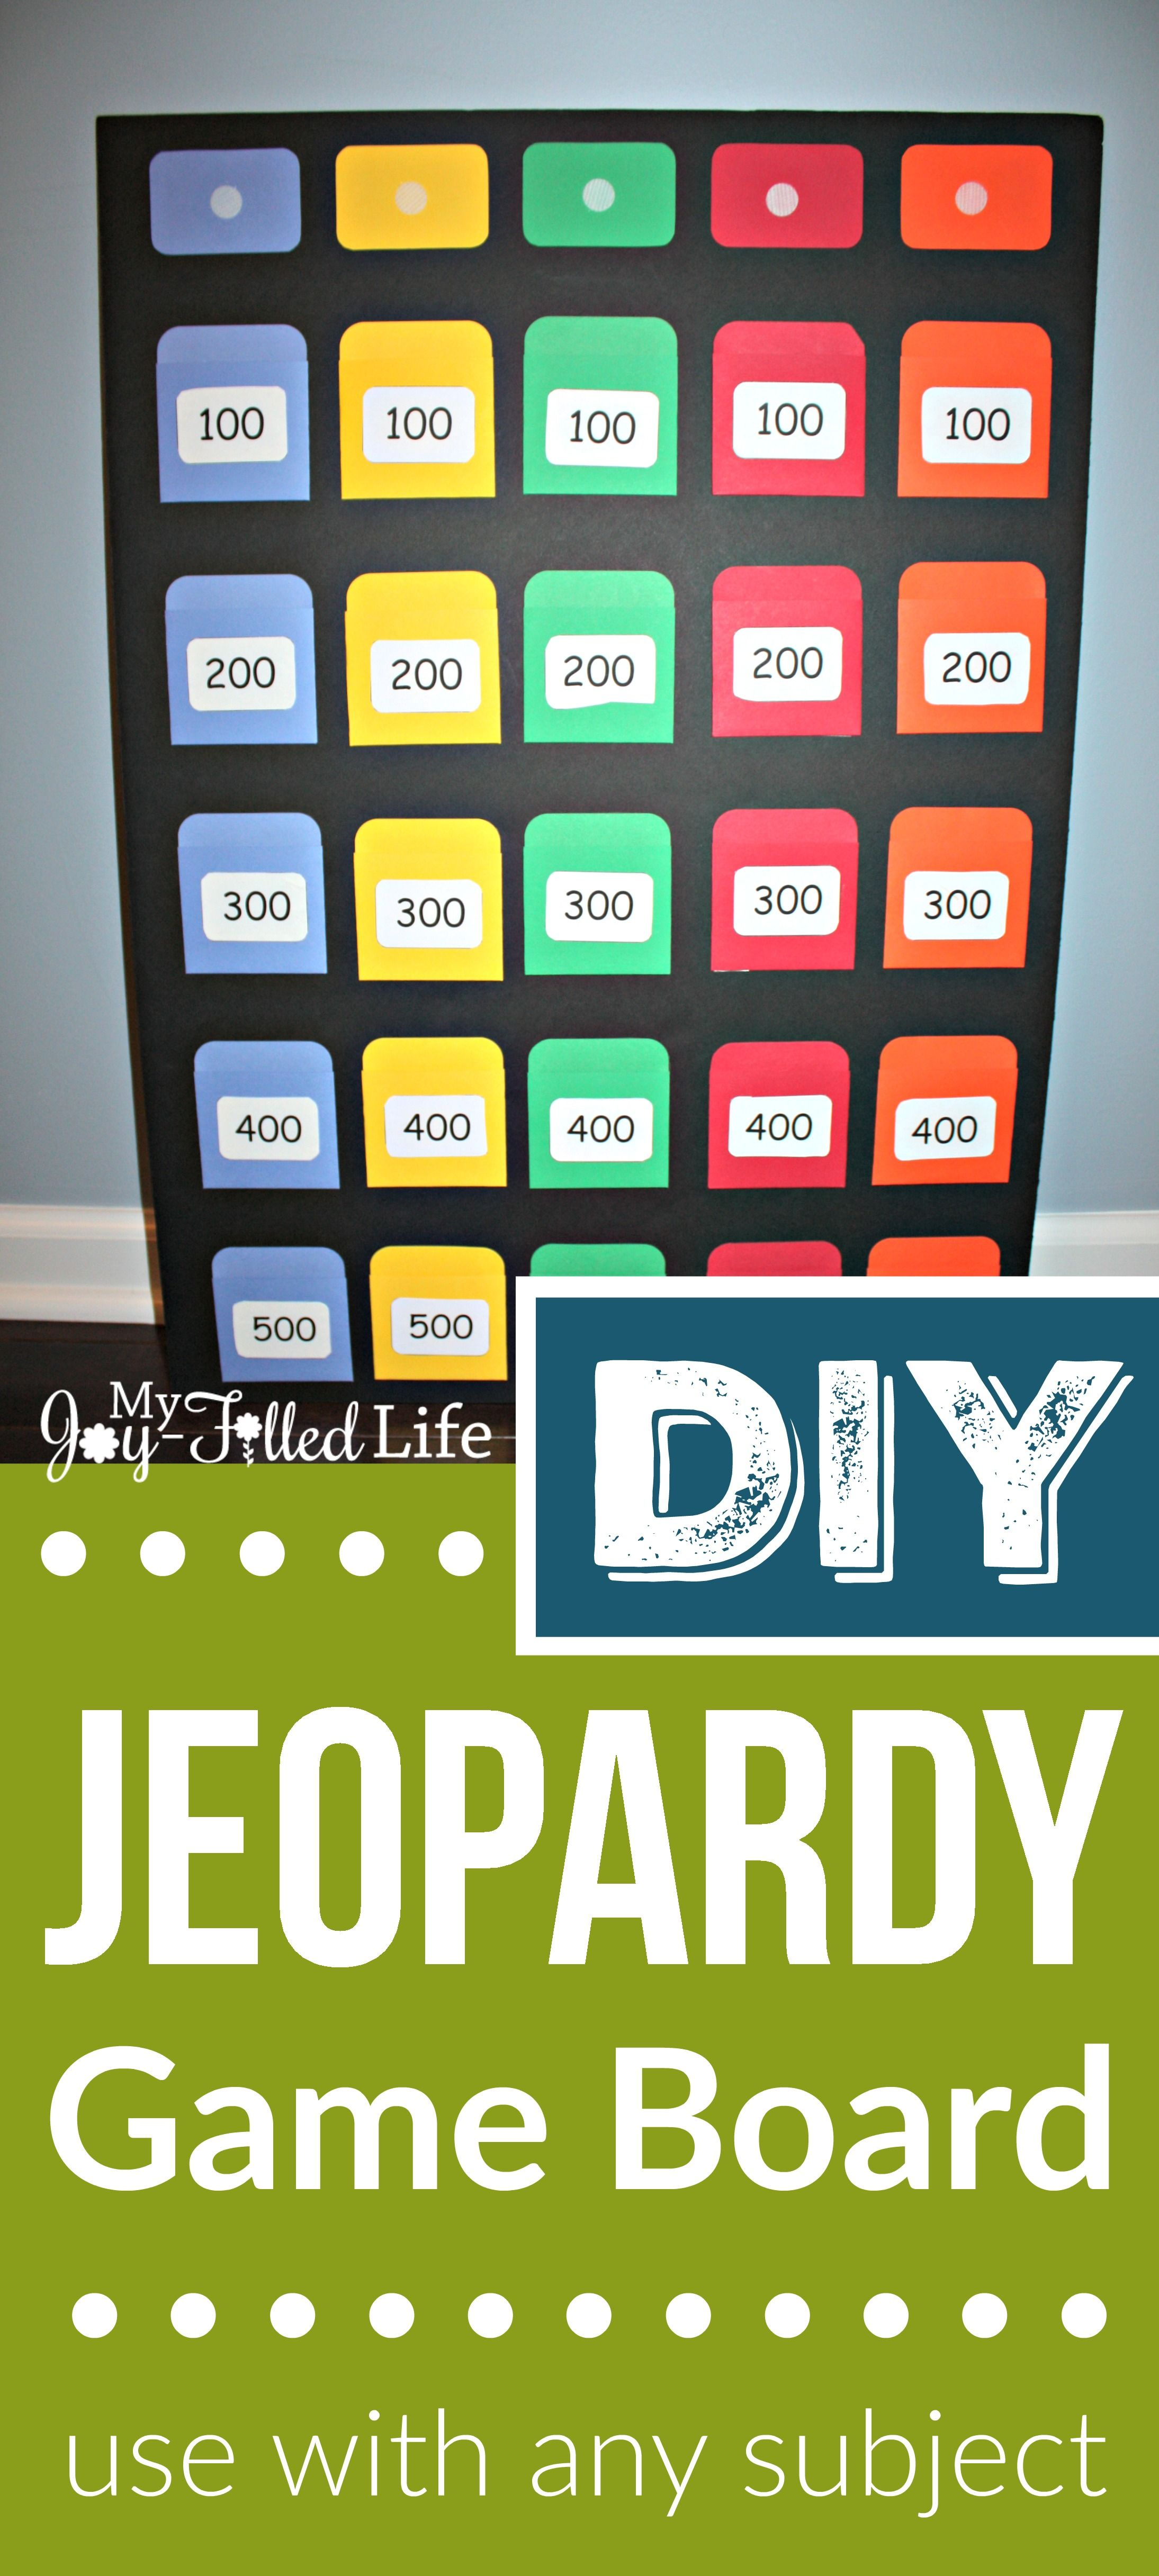 Game board colors - Diy Jeopardy Game Board